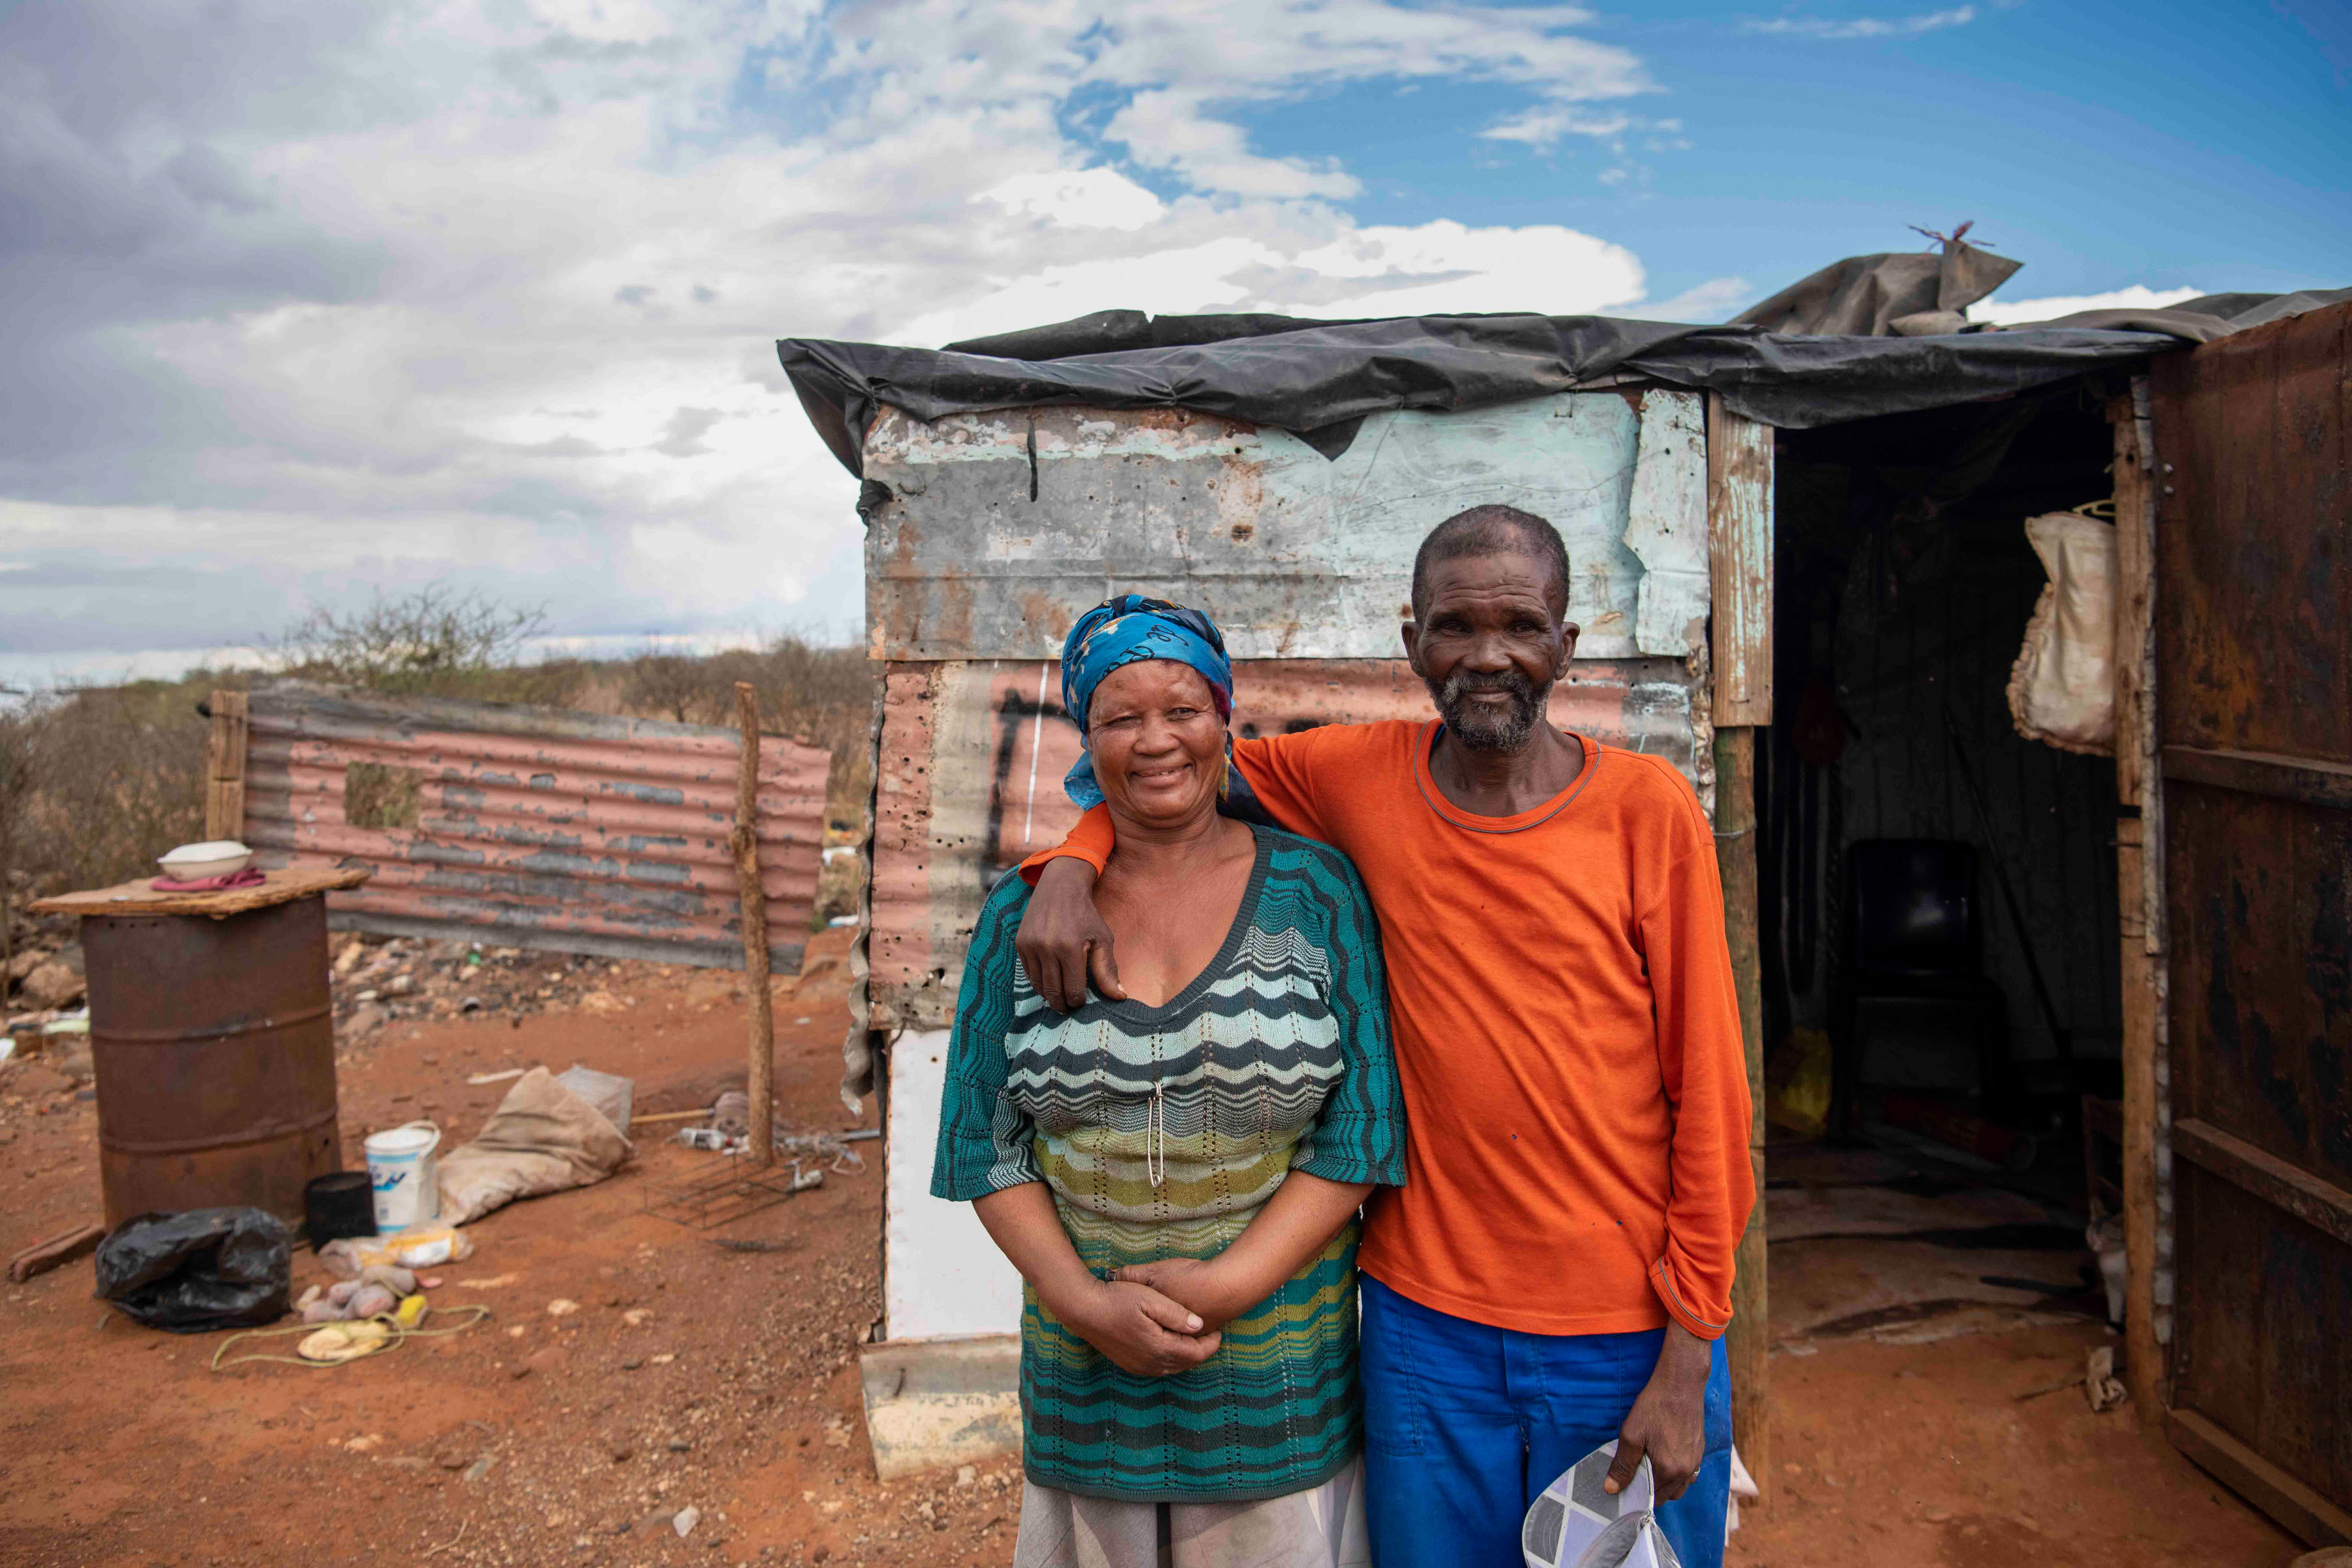 8 January 2020: Lena and Klaas Namaqua got married three weeks ago. They live in a shack next to a rubbish dump, in a settlement with no municipal services.